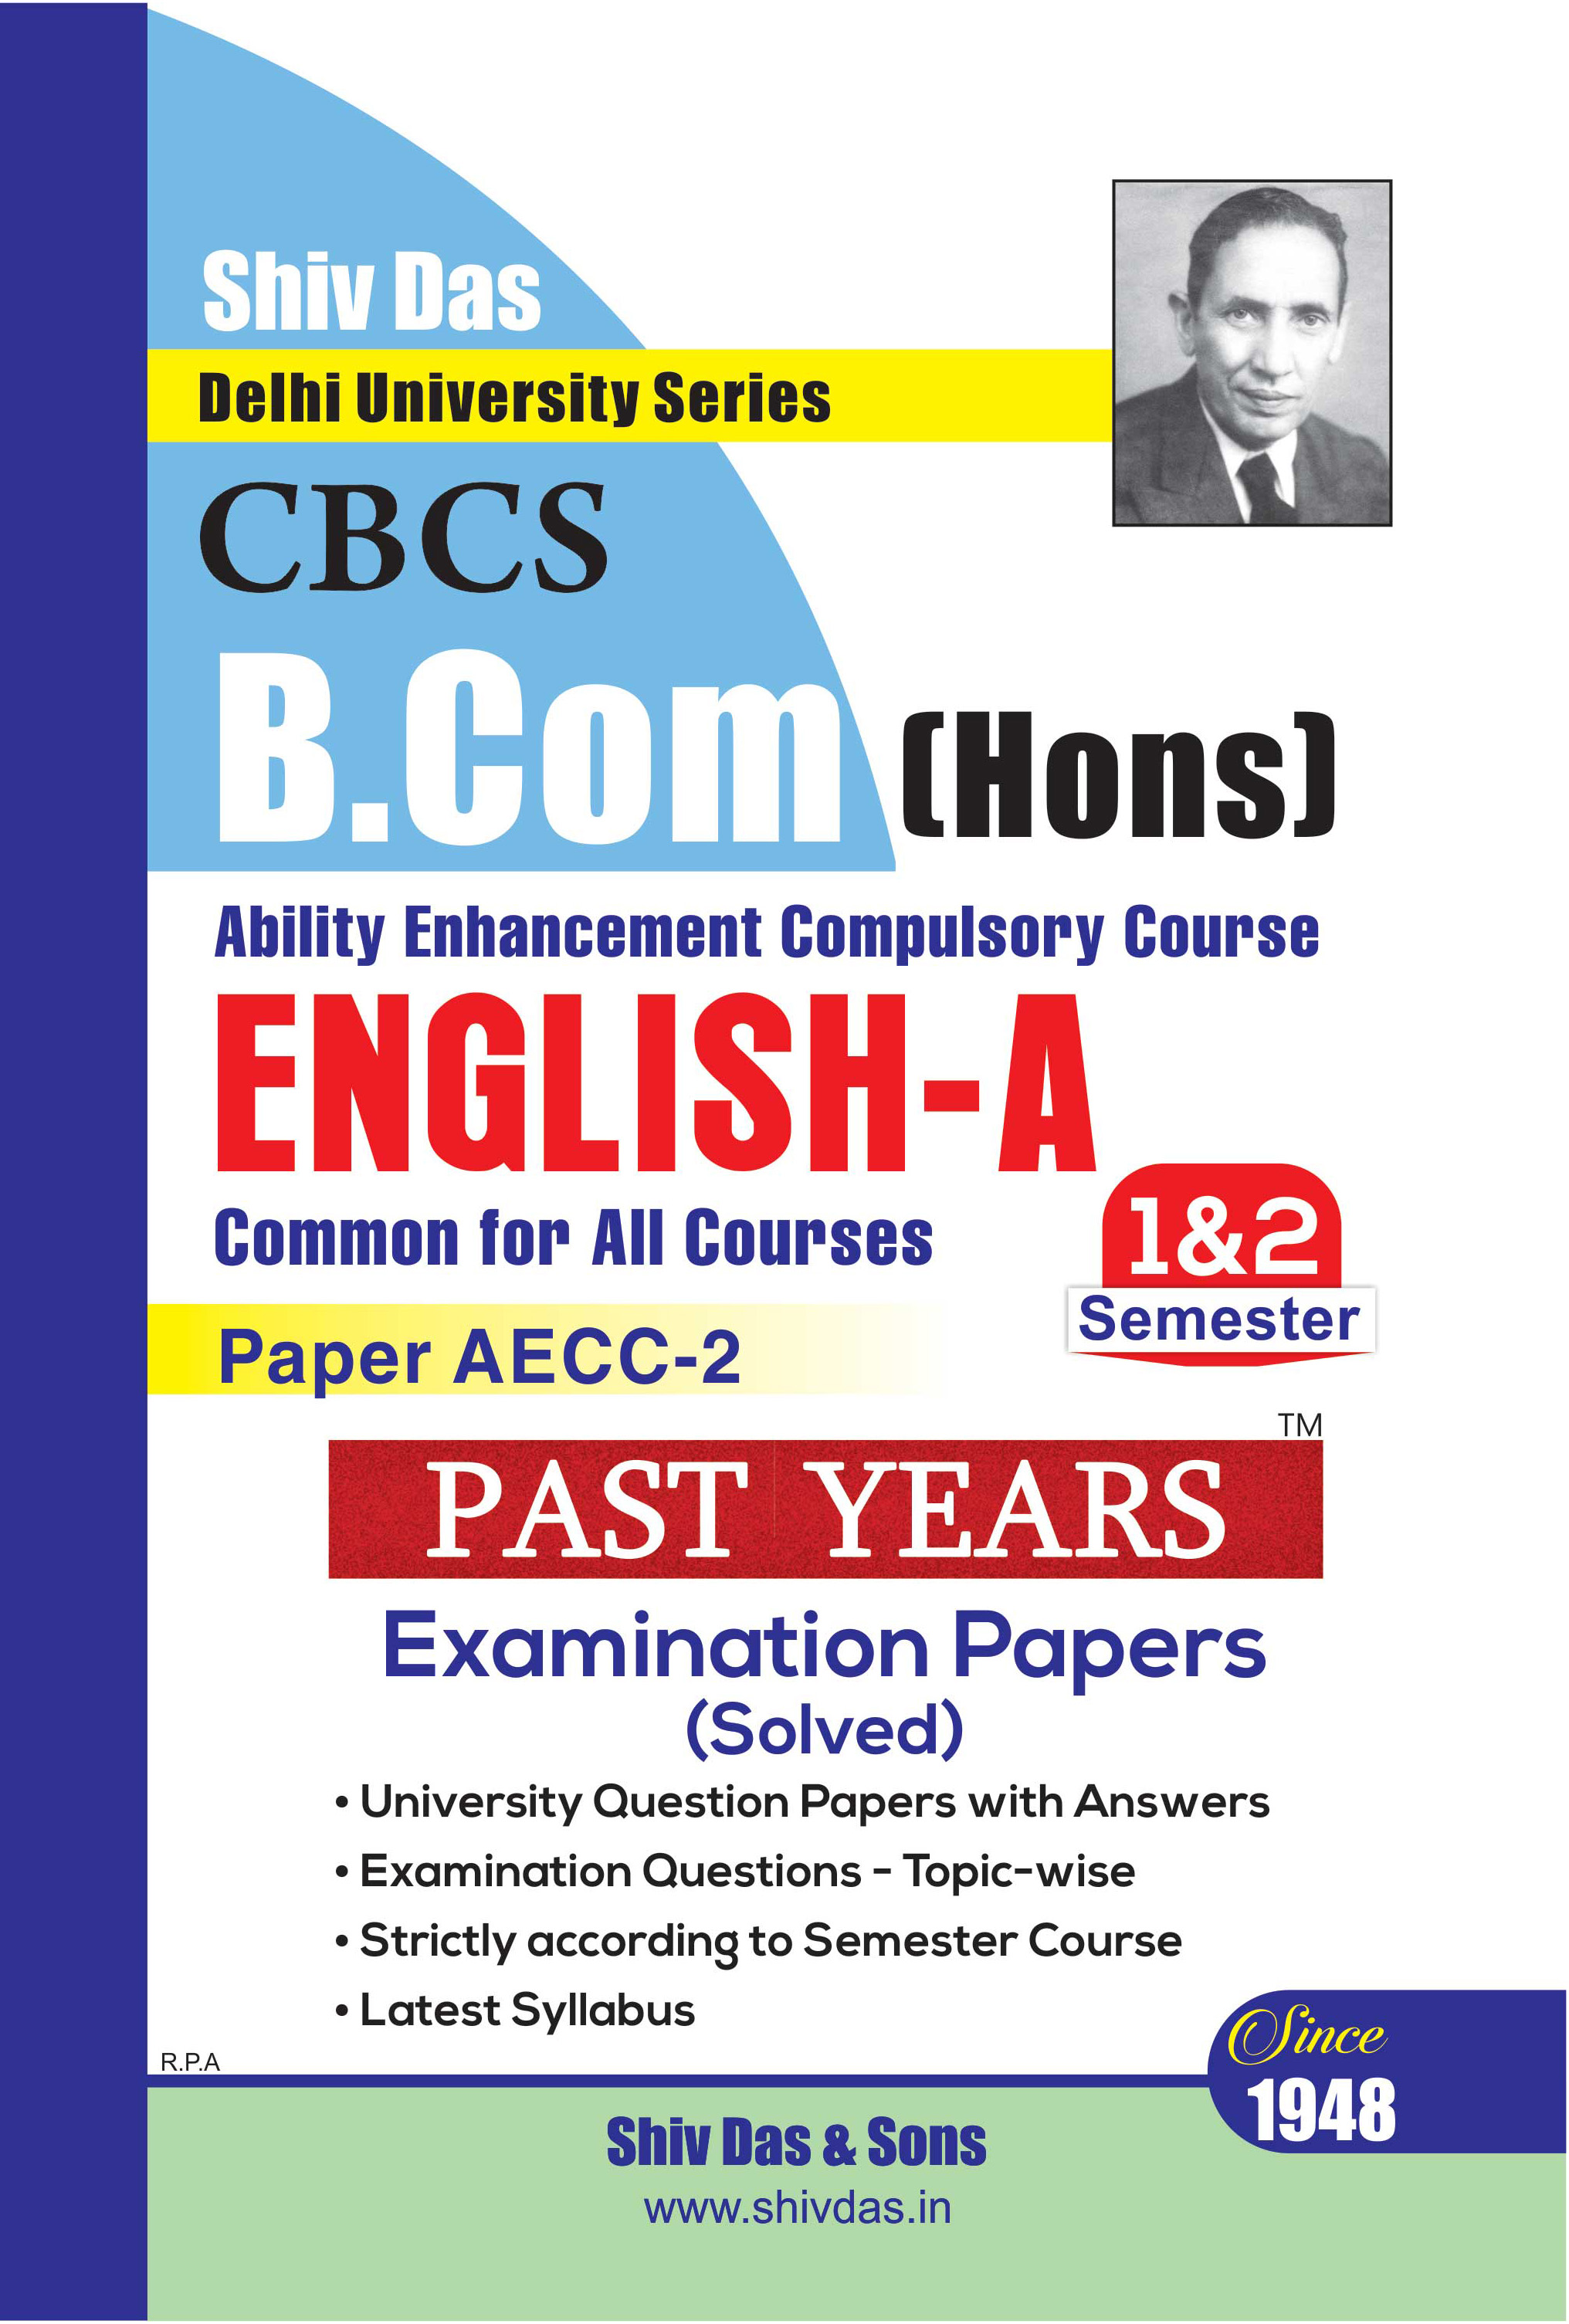 English - A for B.Com Hons Semester 2